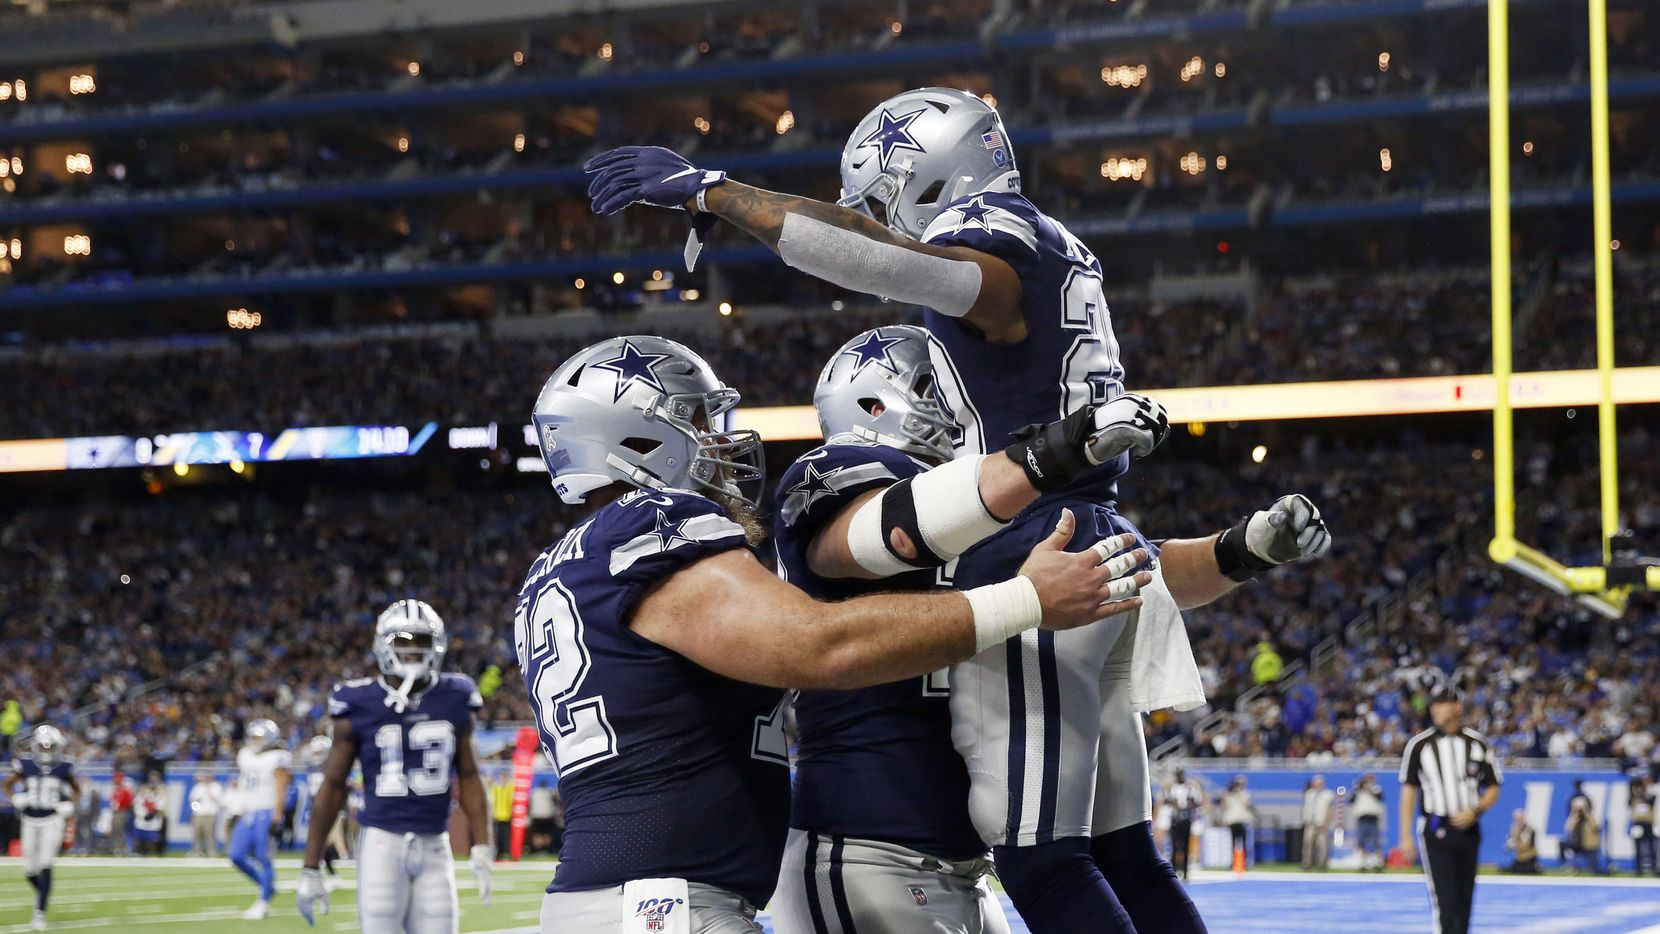 Dallas Cowboys running back Tony Pollard (20) celebrates with Dallas Cowboys center Travis Frederick (72) and Dallas Cowboys offensive guard Zack Martin (70) after scoring a touchdown in a game against the Detroit Lions during the first half of play at Ford Field in Detroit, on Sunday, November 17, 2019.